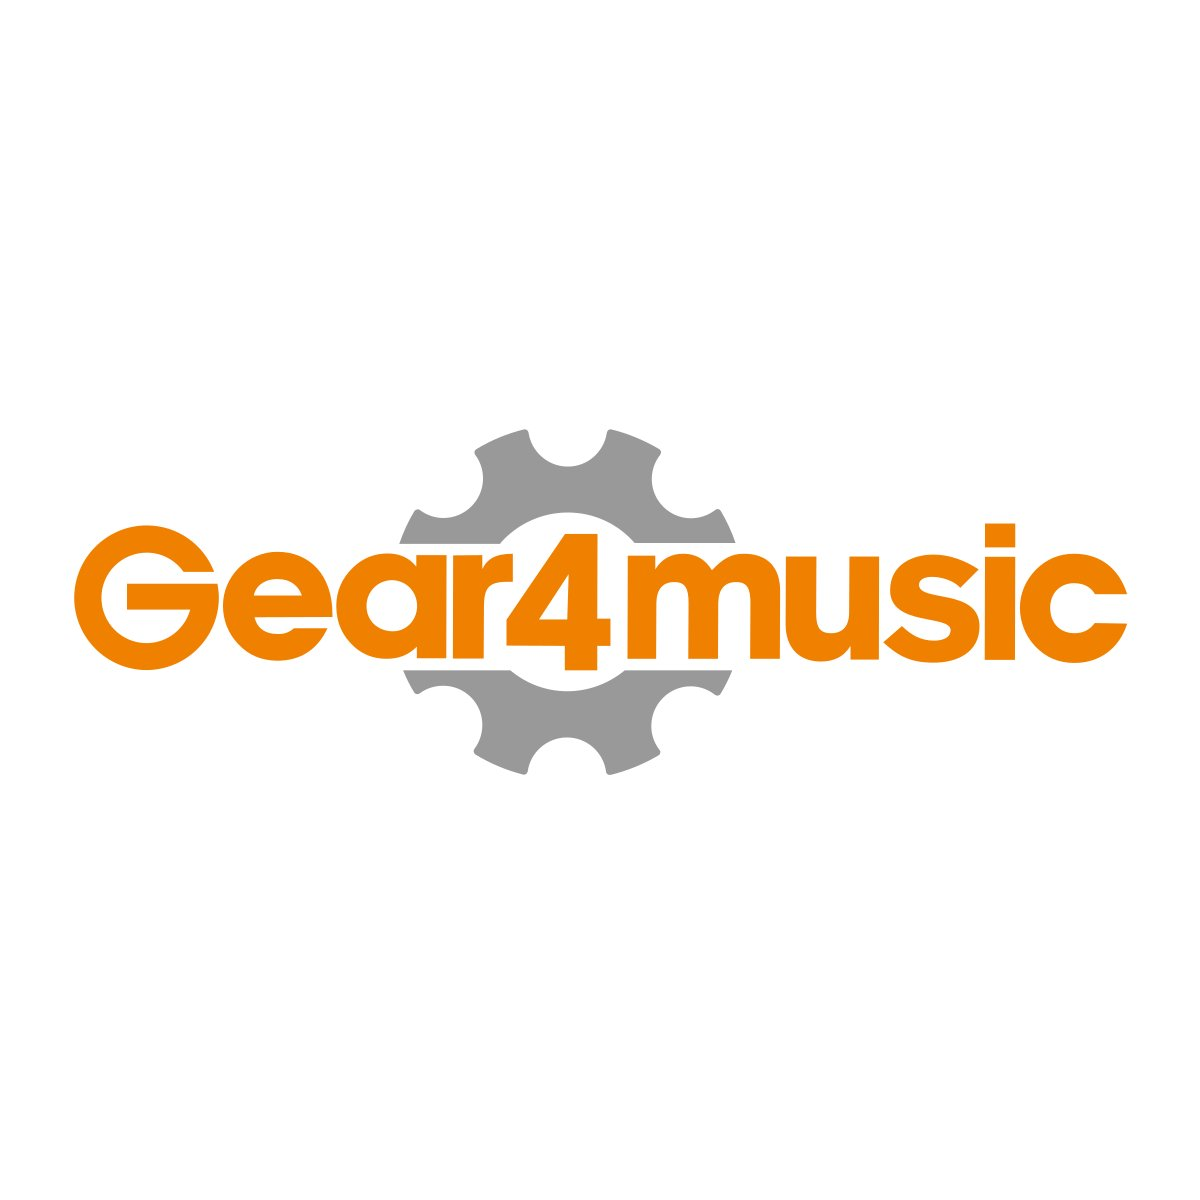 MK-3000 Key-Lighting Keyboard by Gear4music - Starter Pack